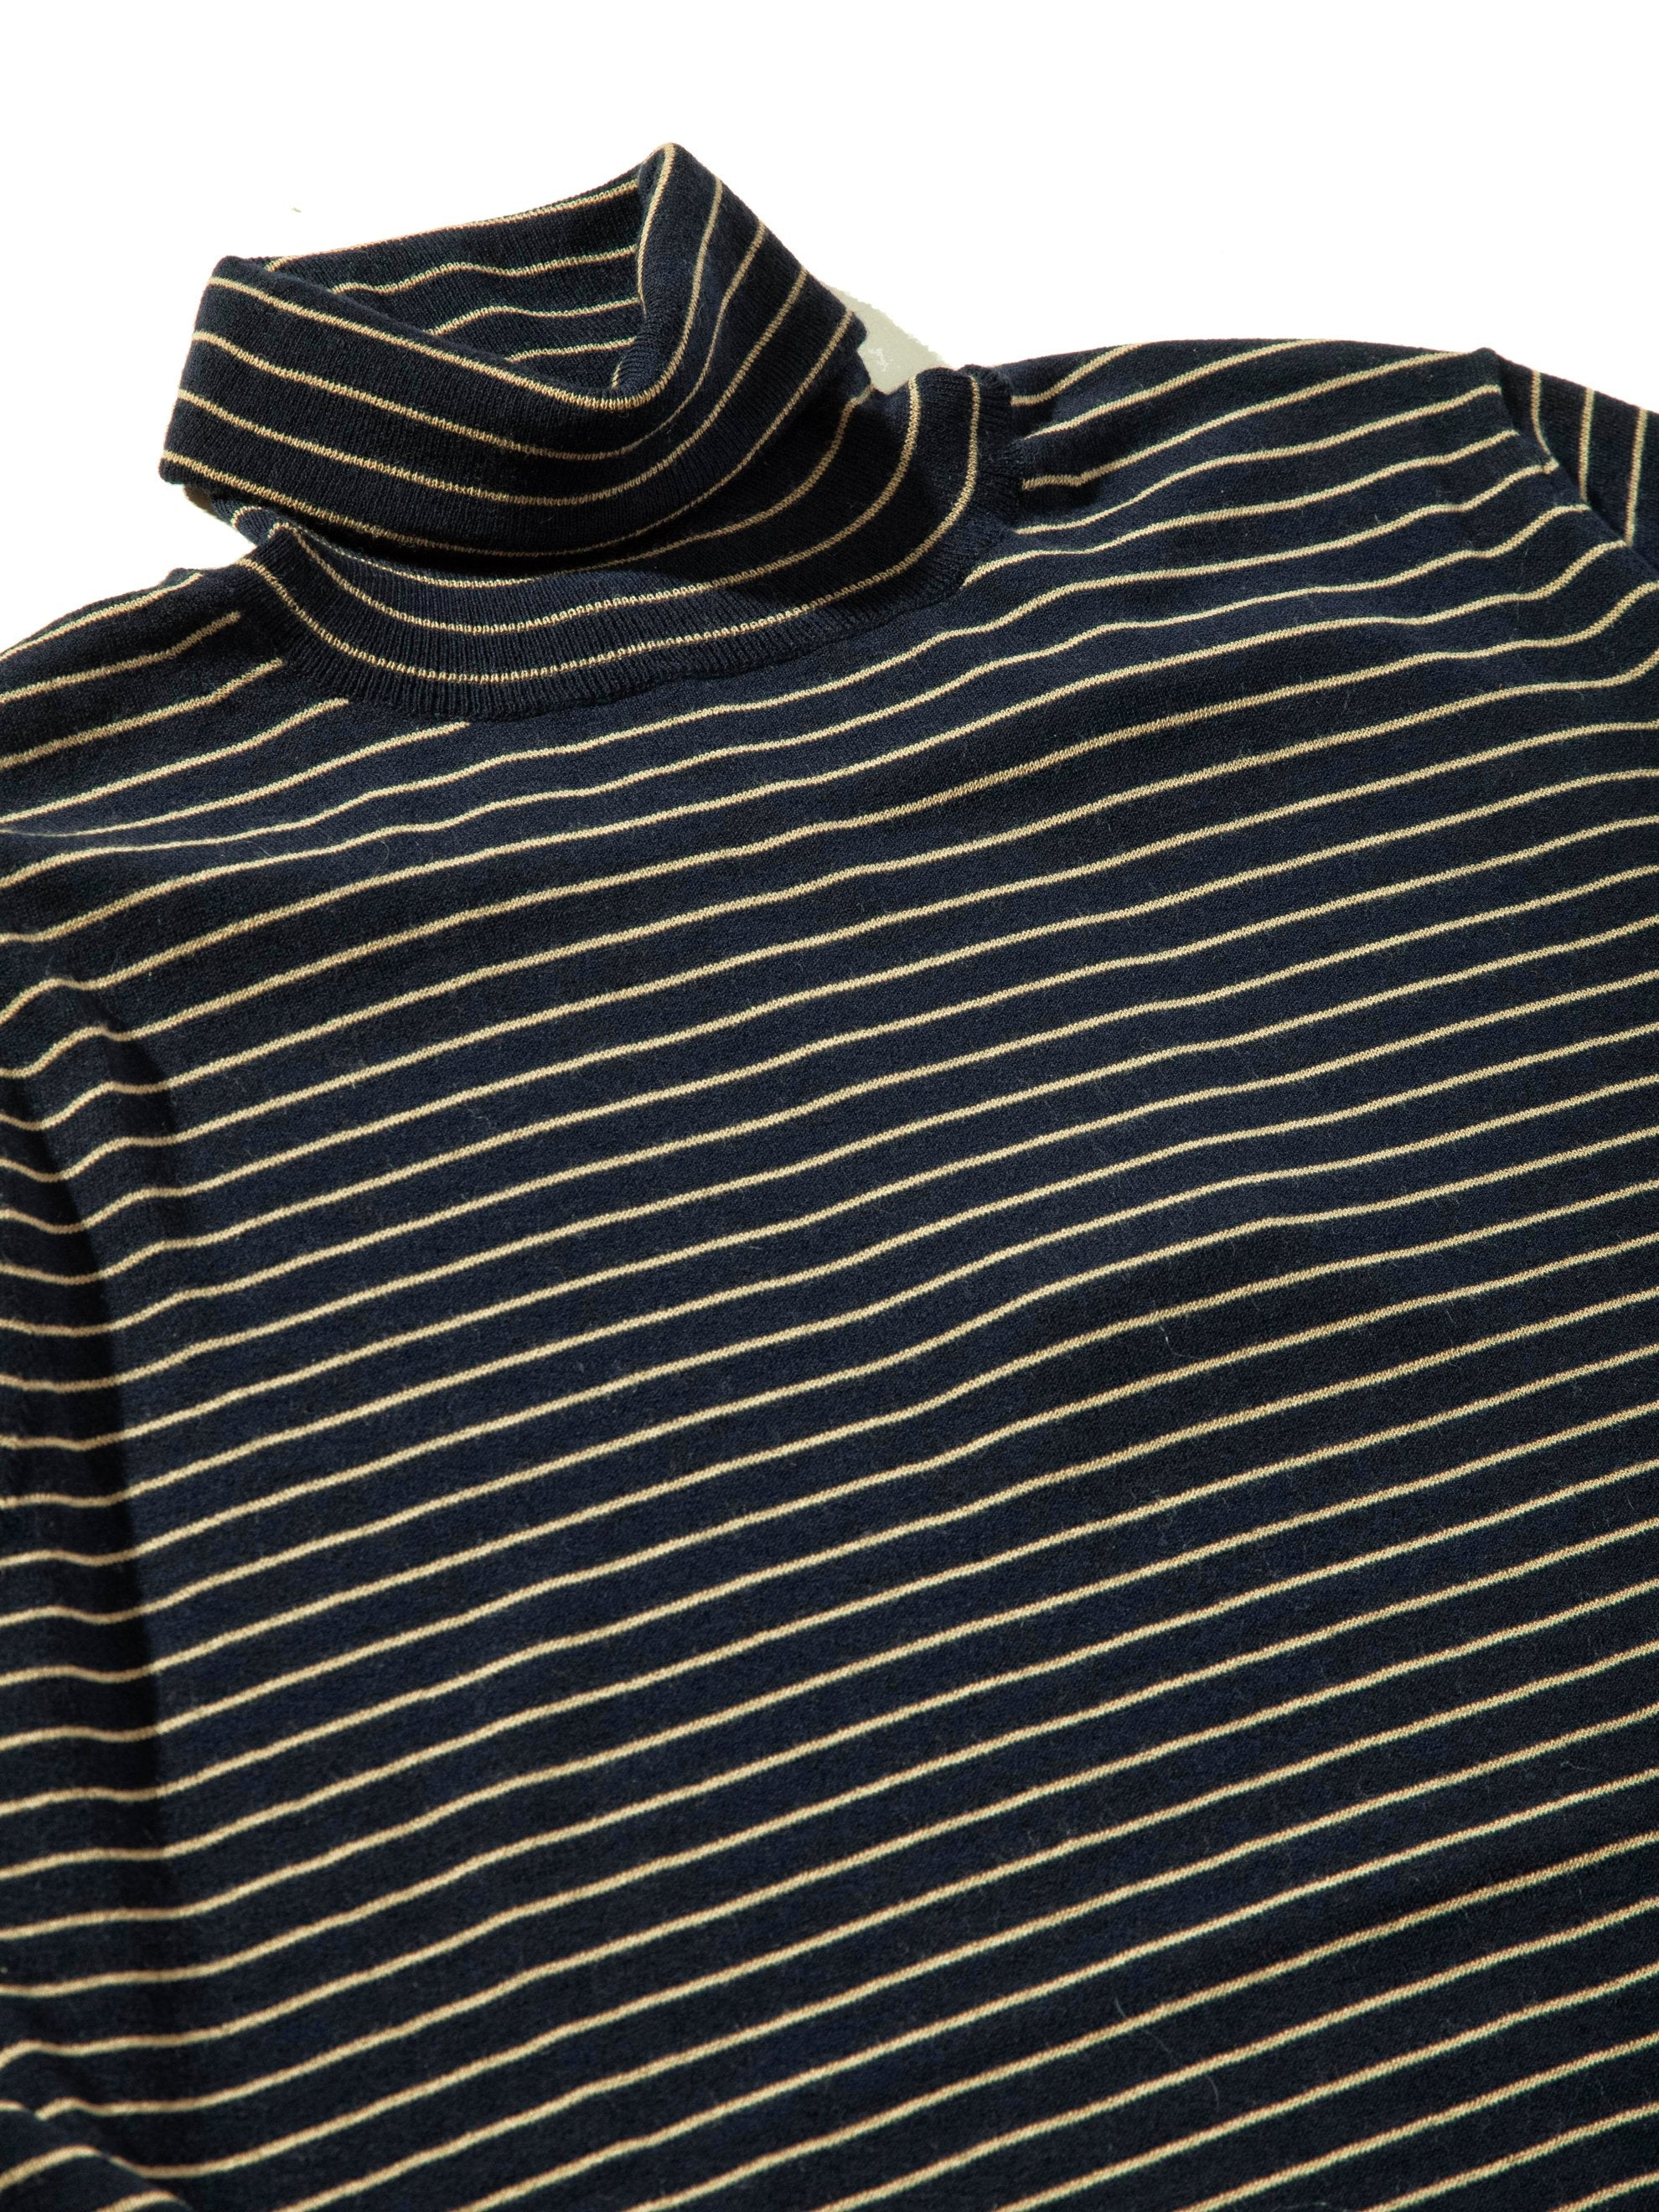 Dark Navy Striped Turtleneck 9